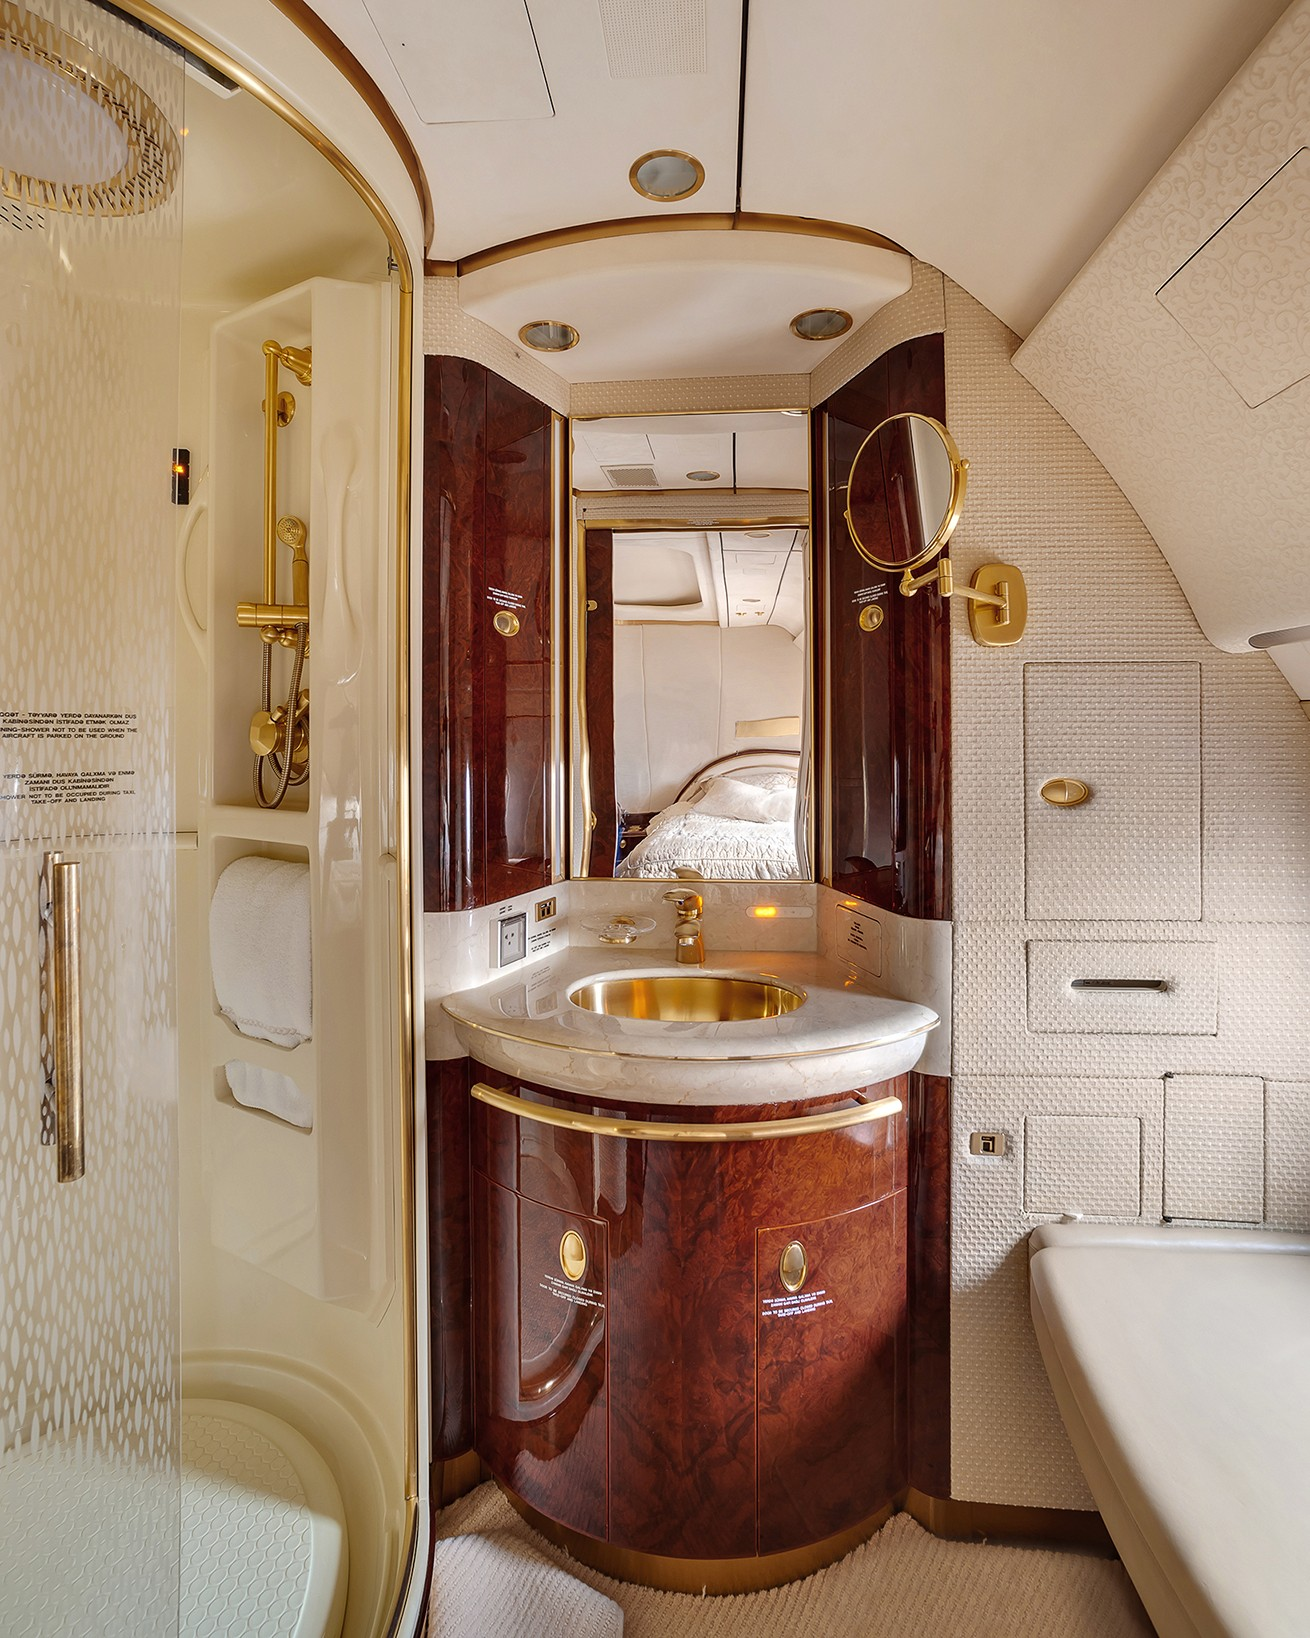 Personal aircraft. Interiors Photographer Toll